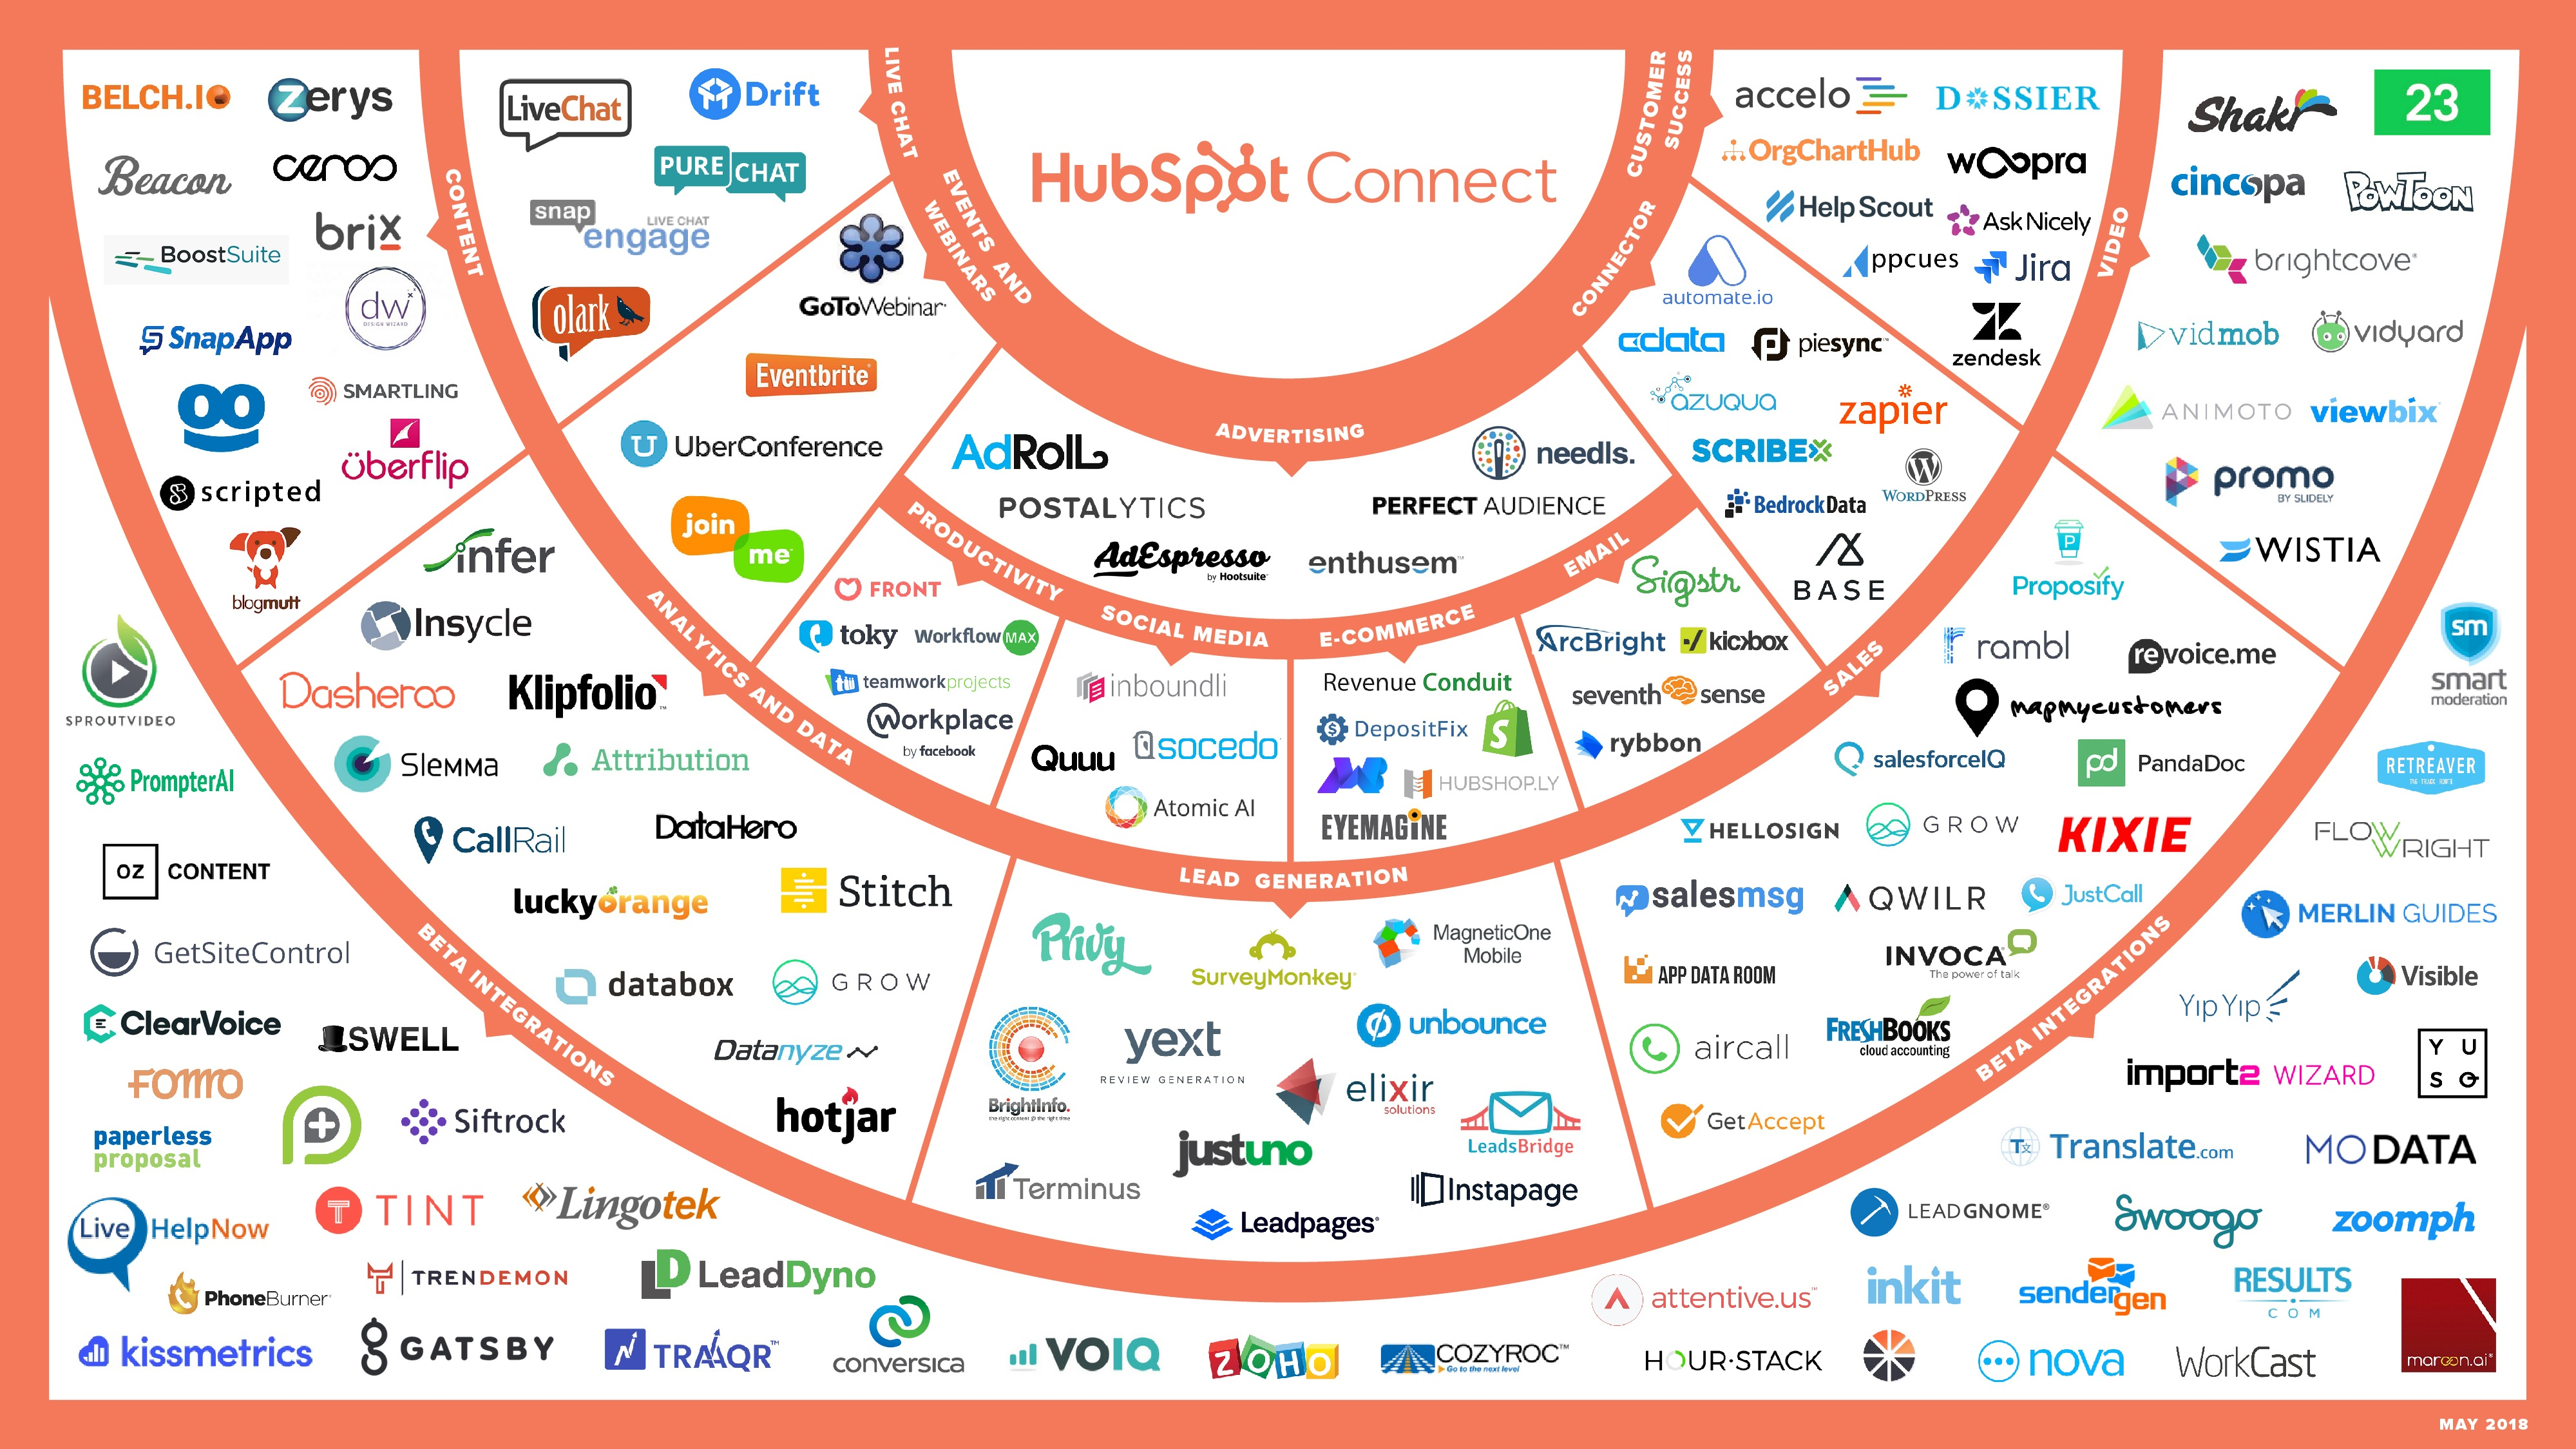 14 things (and counting!) that you can do with HubSpot Integrations